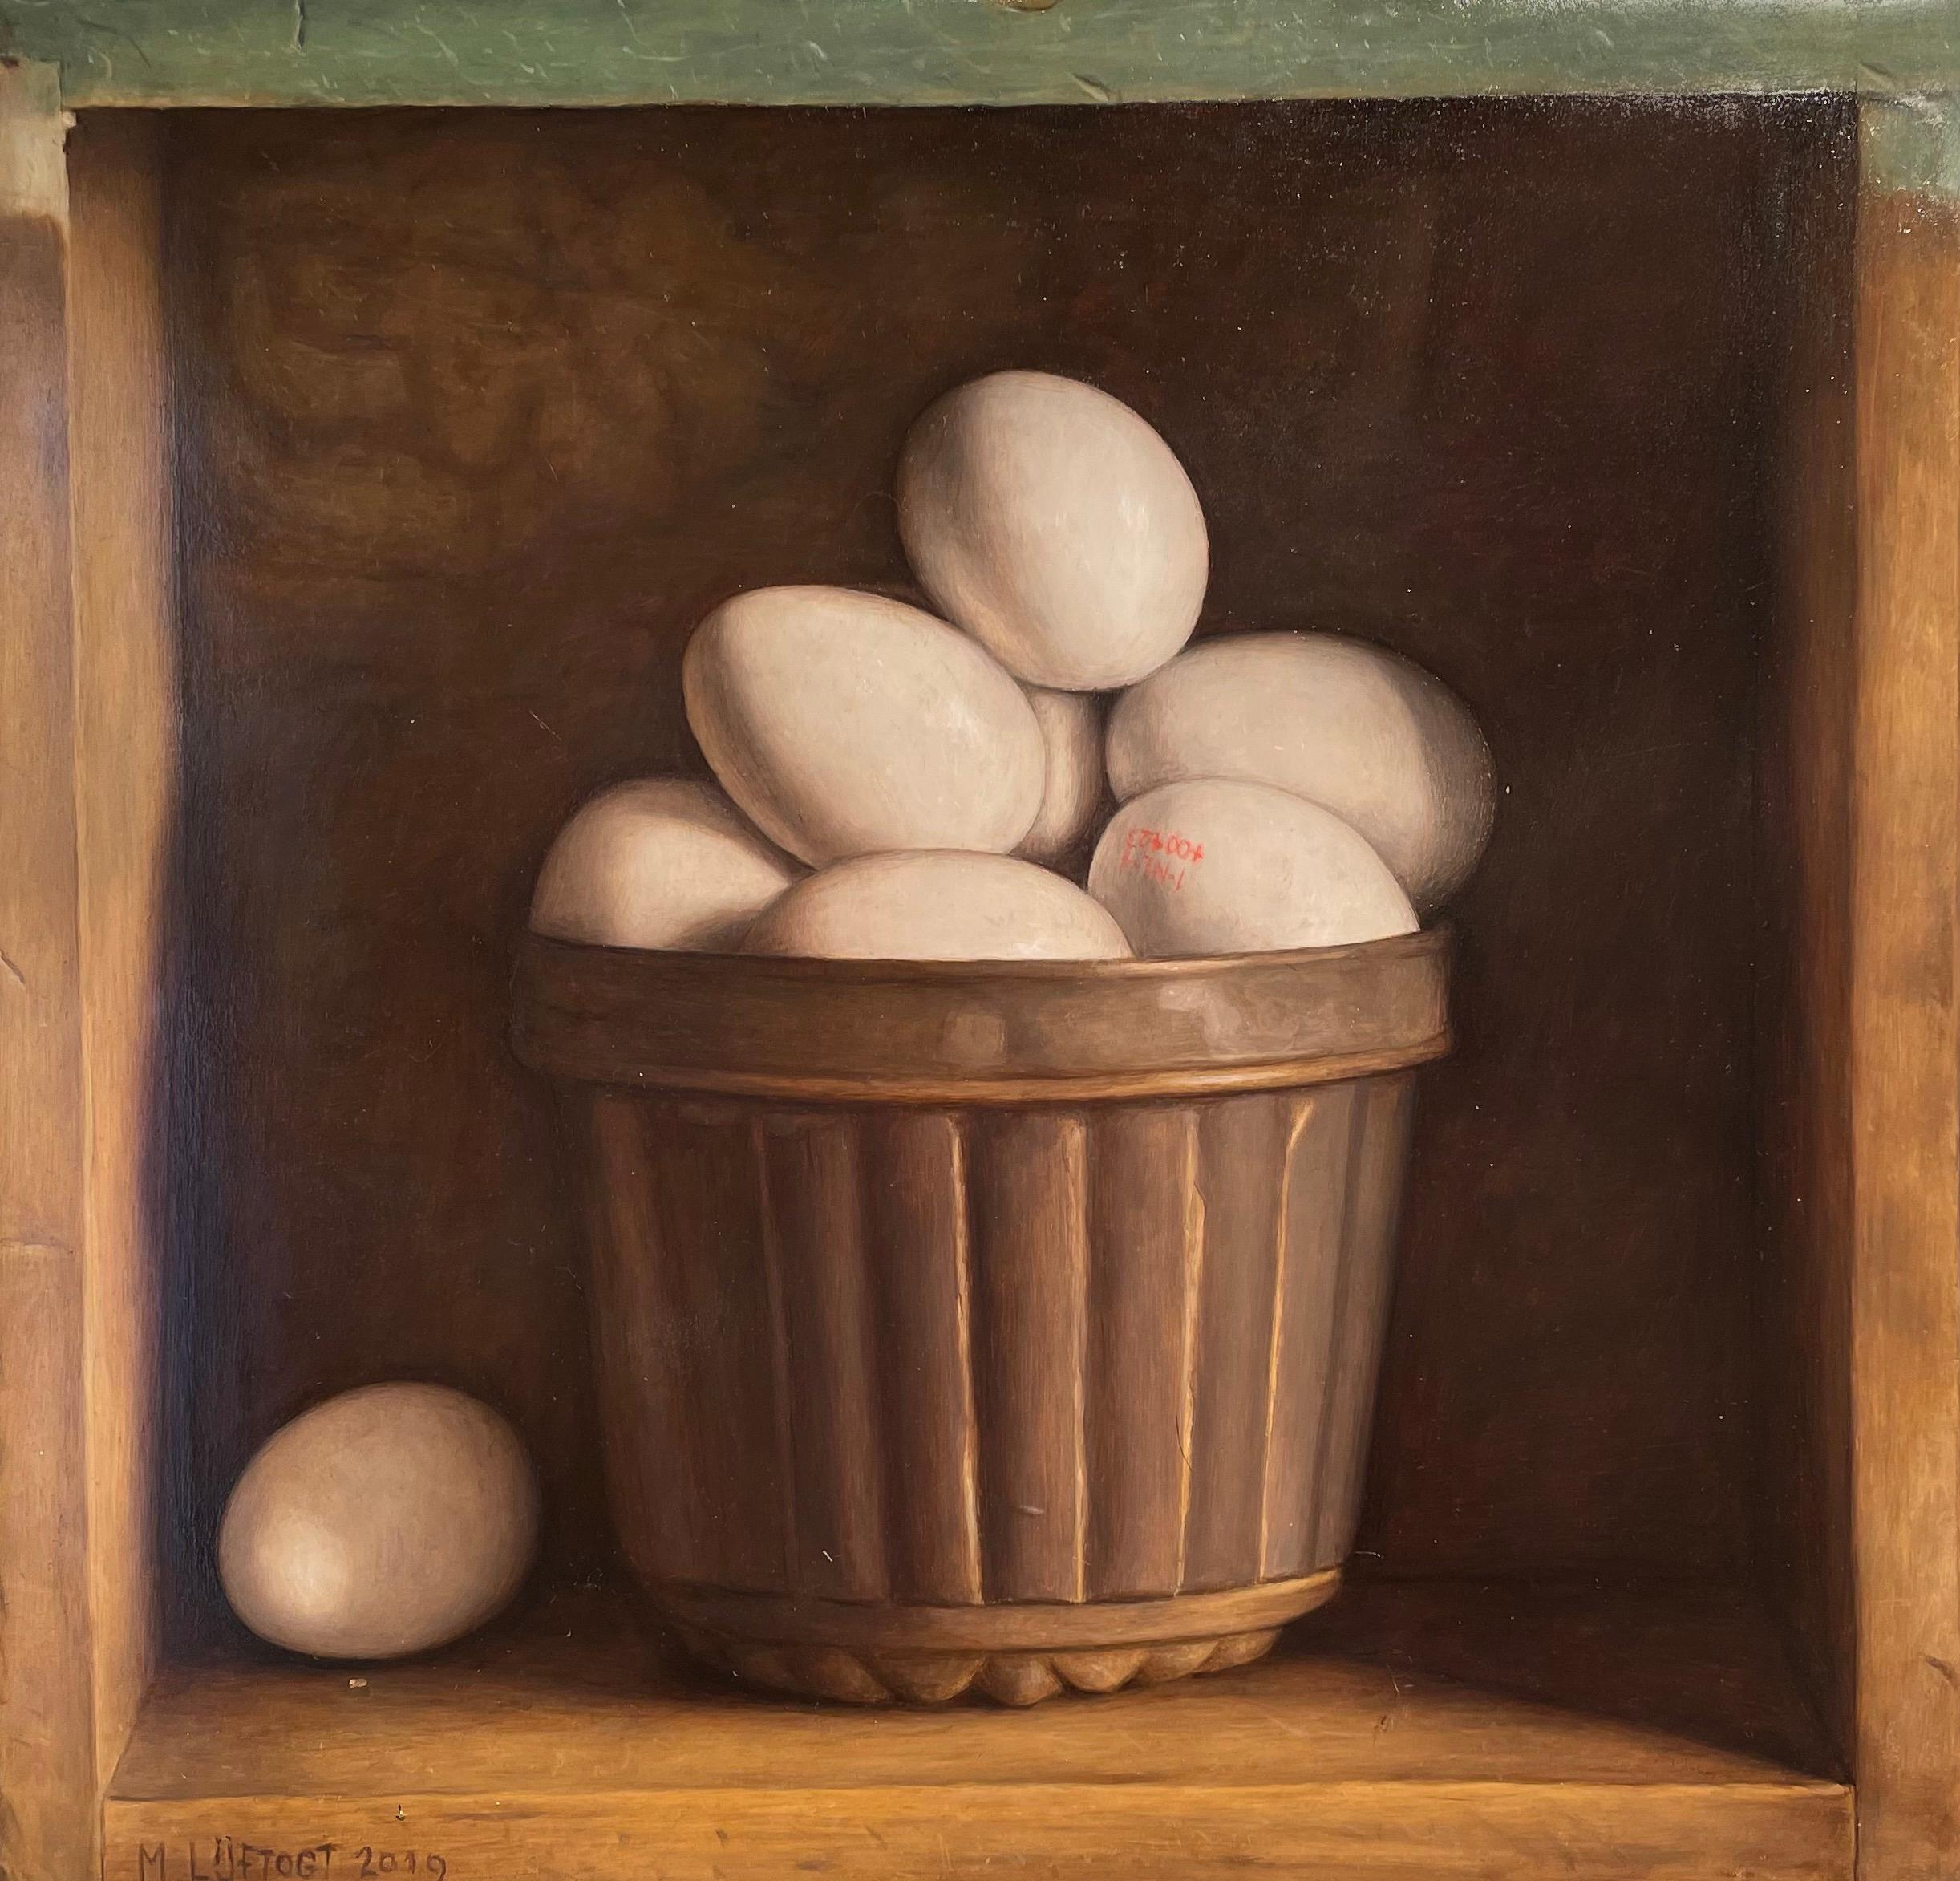 'Cake Mould with Eggs' Still Life realist painting in a wooden cabinet, white